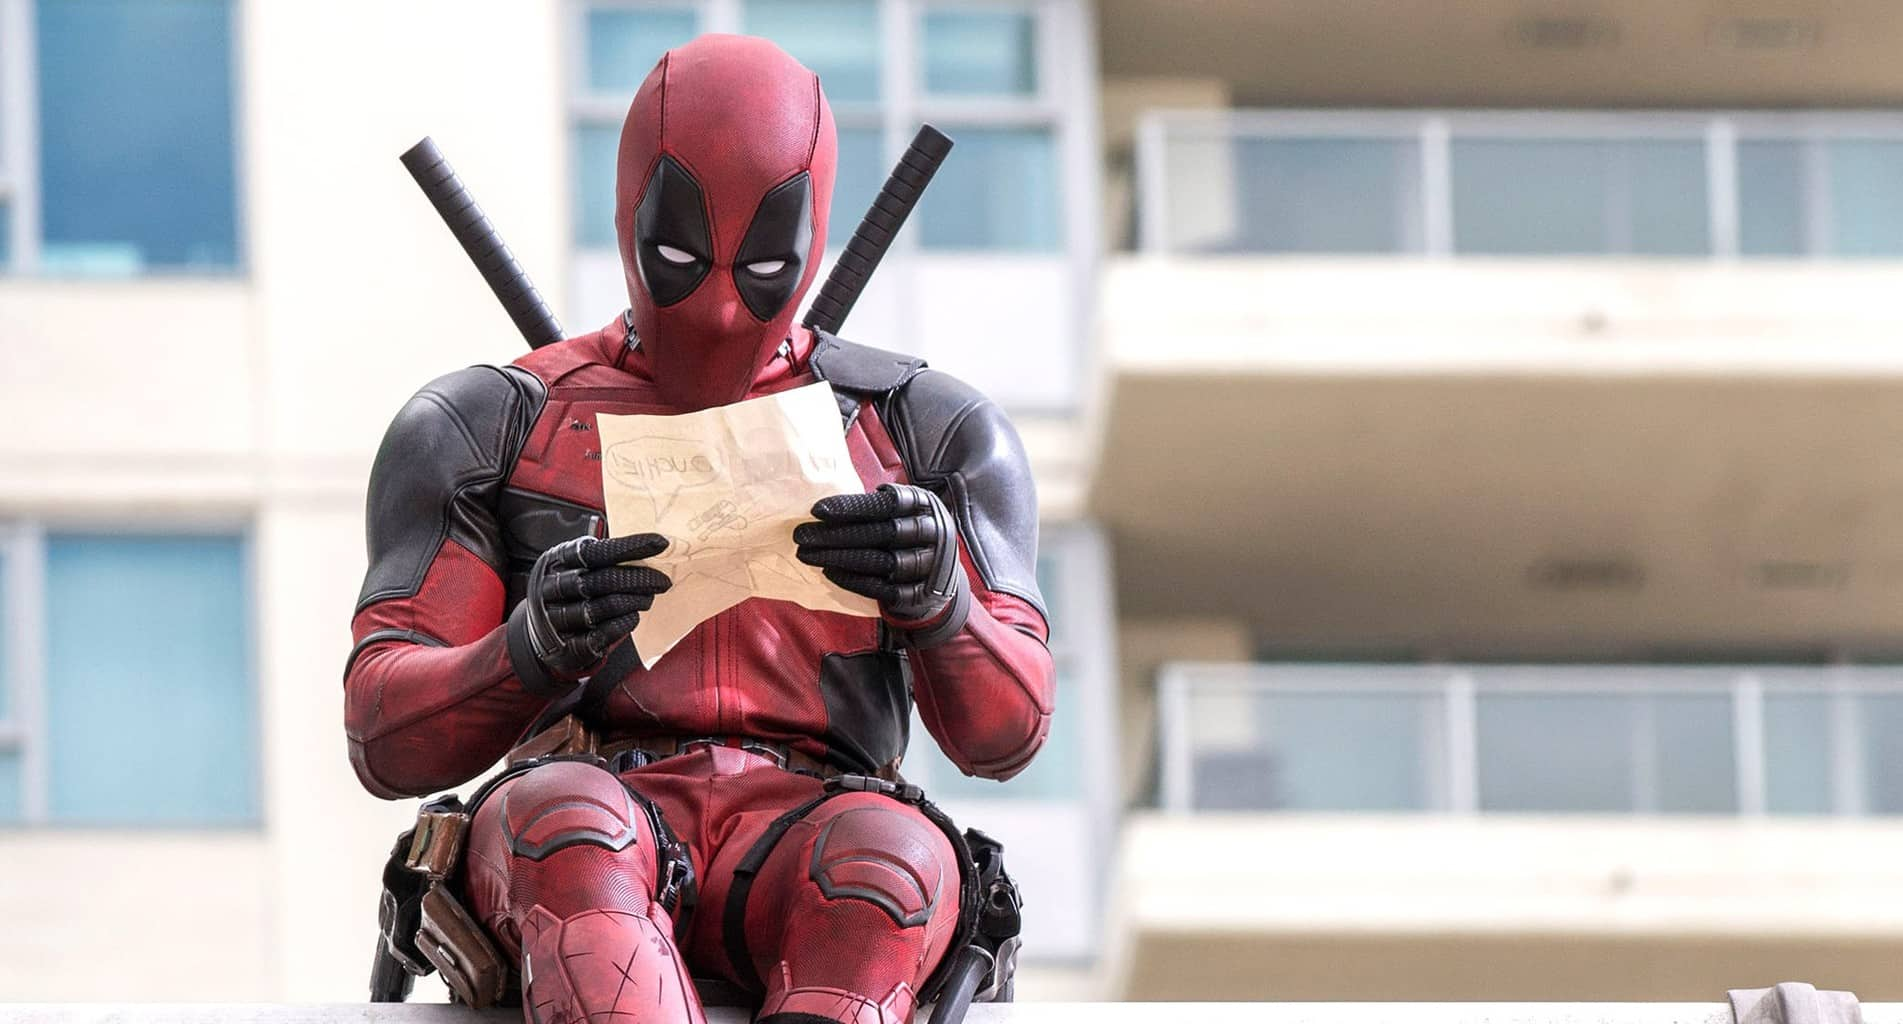 film reviews | movies | features | BRWC Deadpool Delivers Best February Open For IMAX In The UK